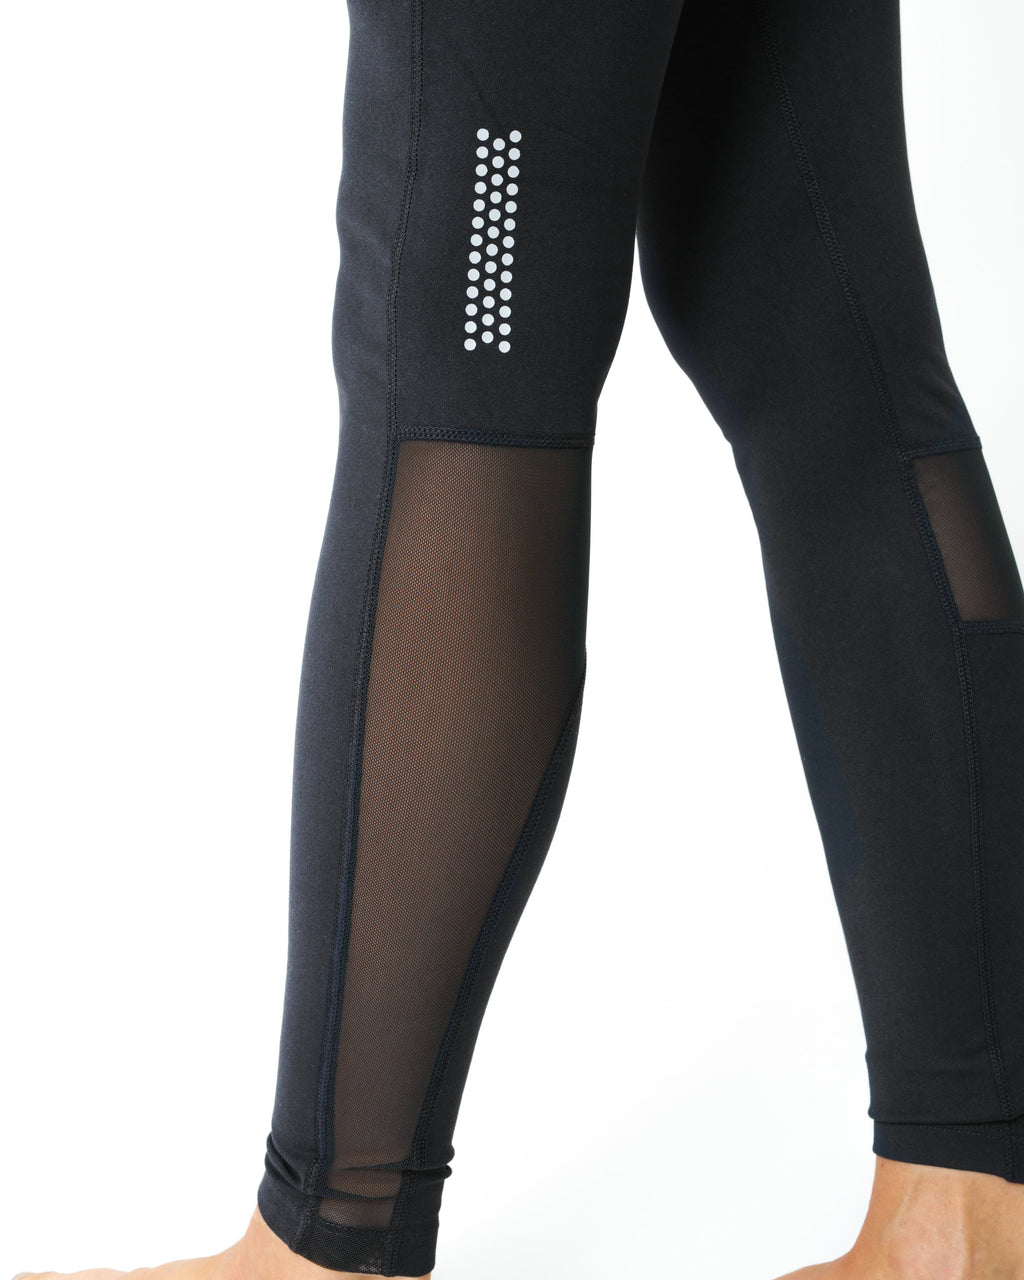 Energique Athletic Leggings With Reflective Strips and Mesh Panels - KATANA FASHION BOUTIQUE